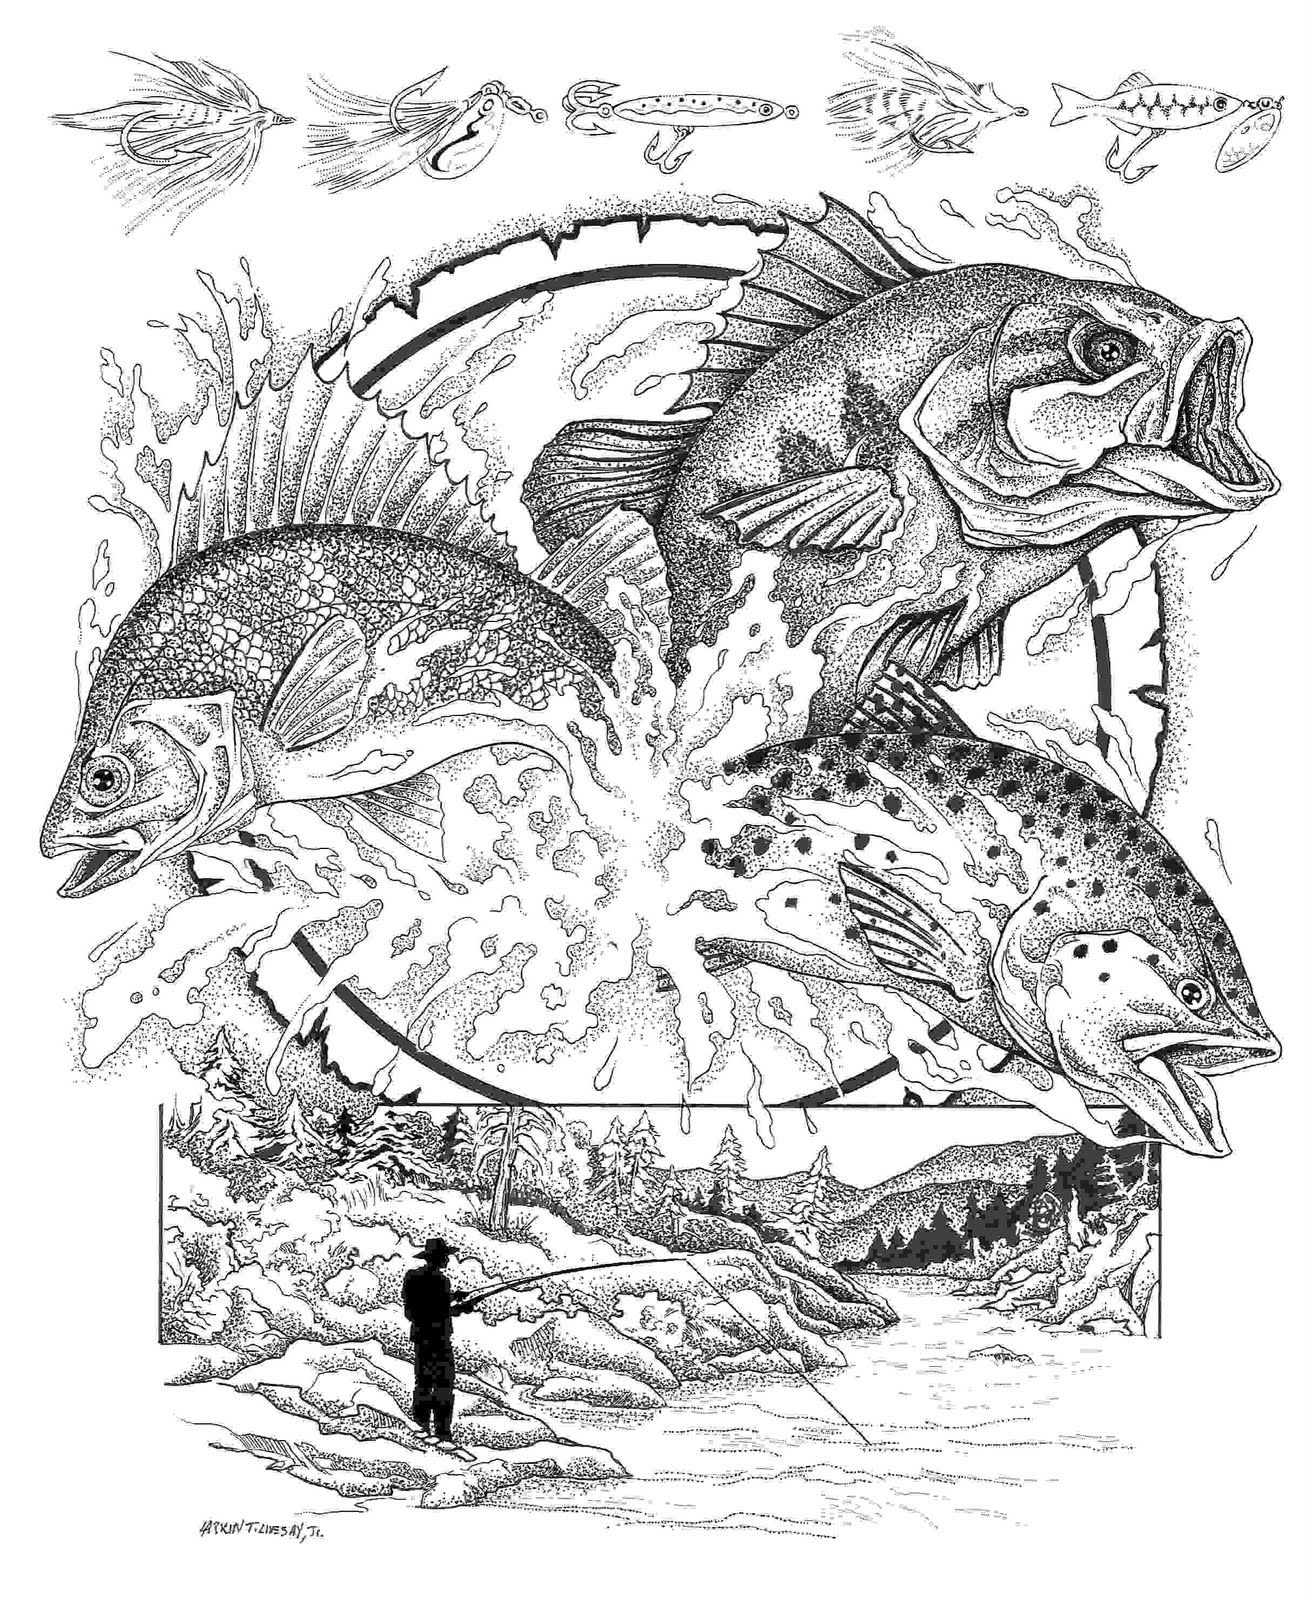 Fly Fishing Final 2 Jpg 1311 1600 Animal Coloring Pages Coloring Books Coloring Pages